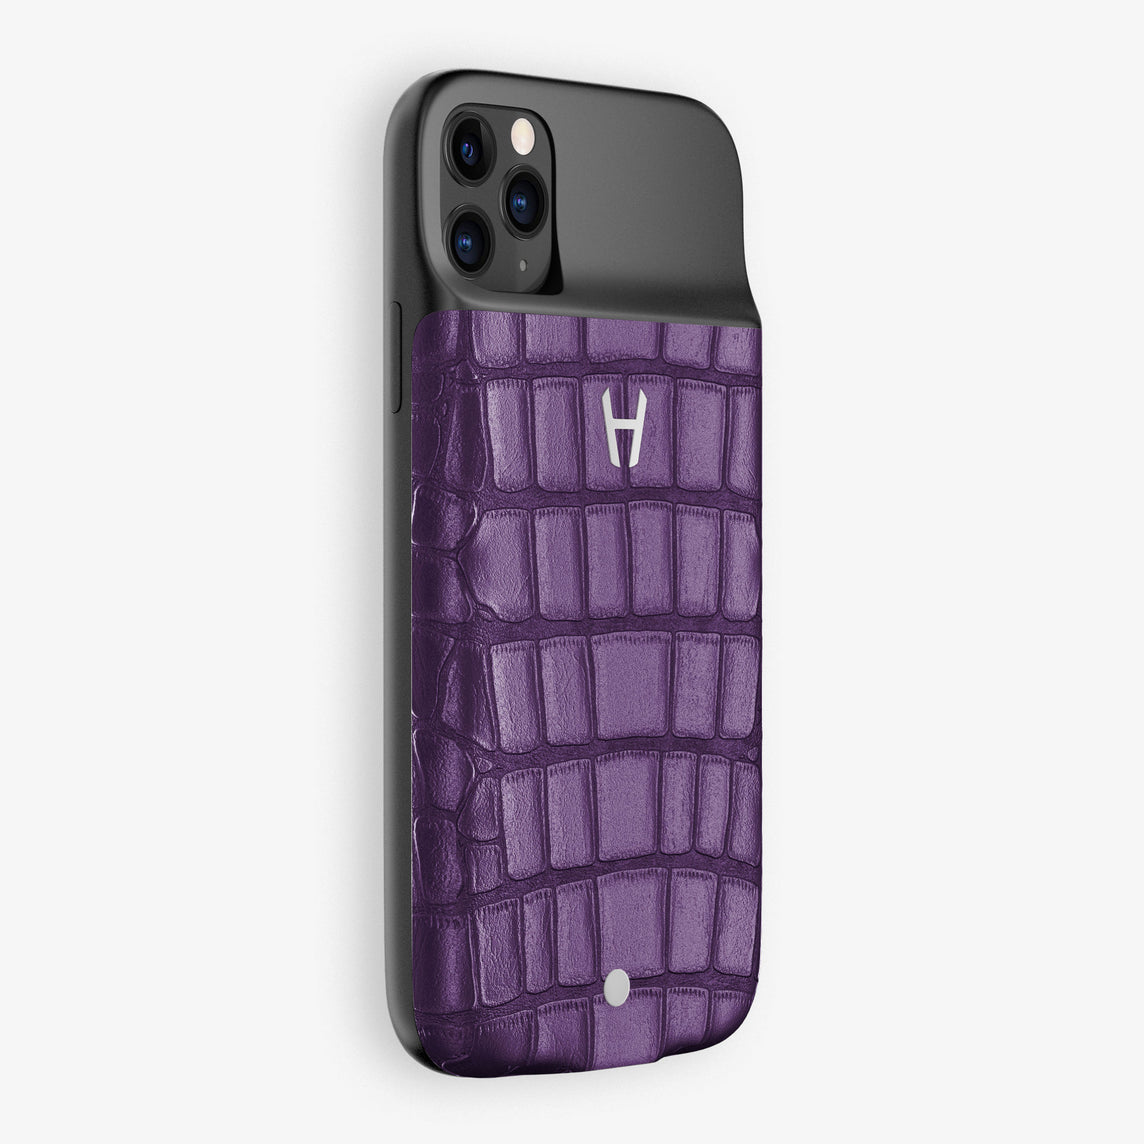 Alligator Battery Case iPhone 11 Pro | Violet Purple - Stainless Steel